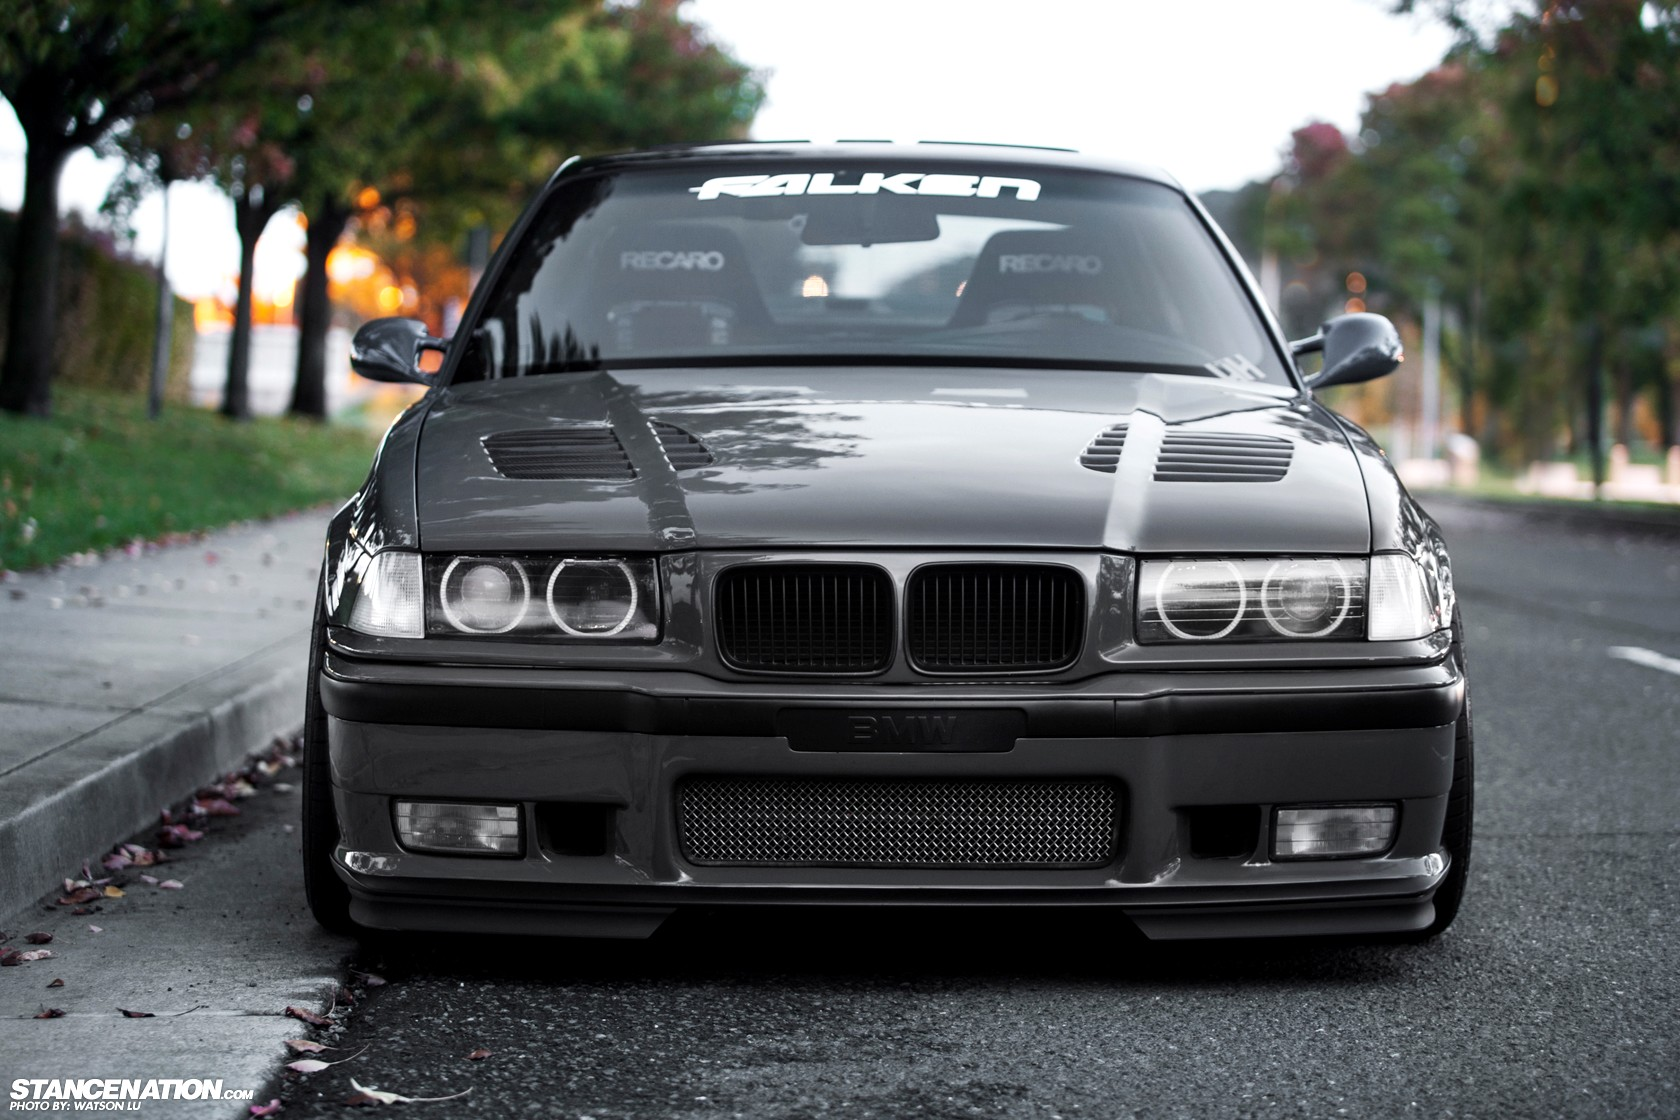 Bmw E36 Wallpapers HD Download 1680x1120